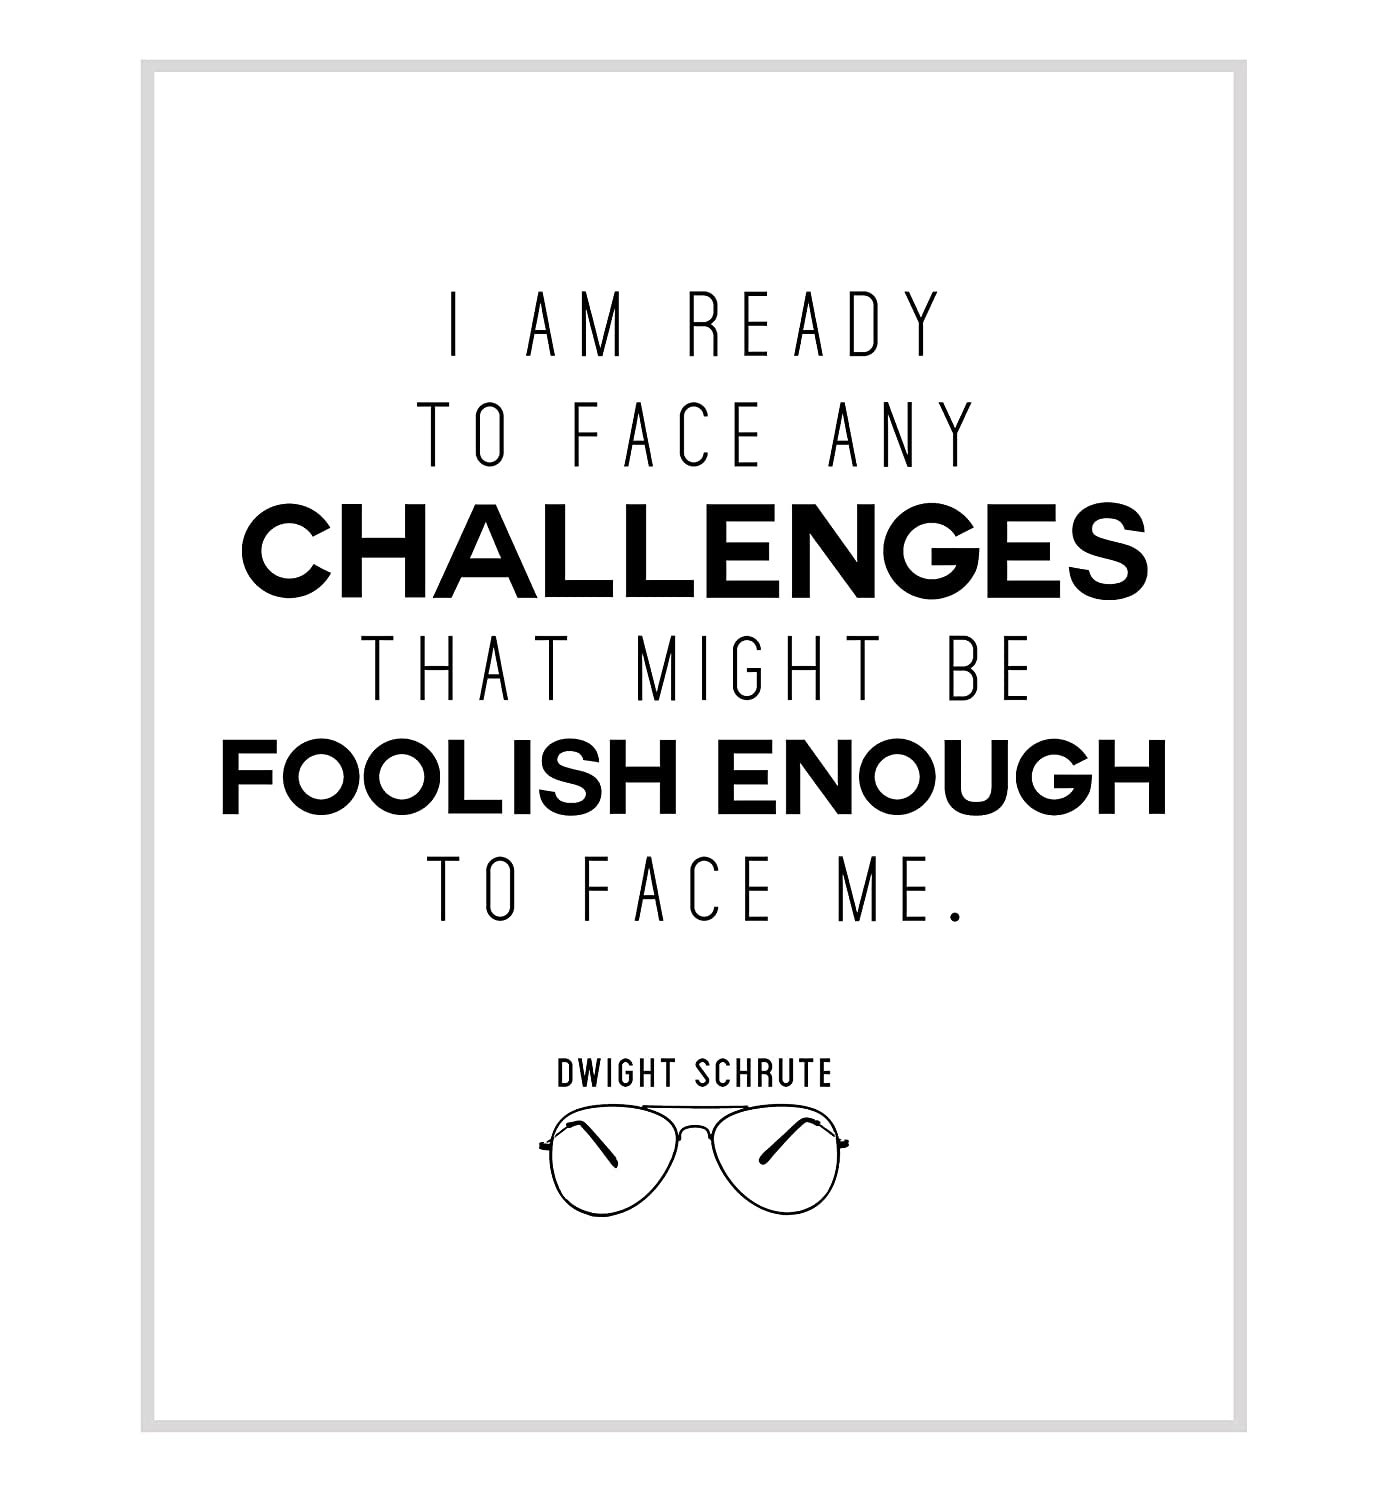 The Office Poster - Dwight Schrute Motivational Quote Poster- I Am Ready To Face Any Challenges - 11x14 Unframed Print - Great Gift For Fans Of The Office TV Show